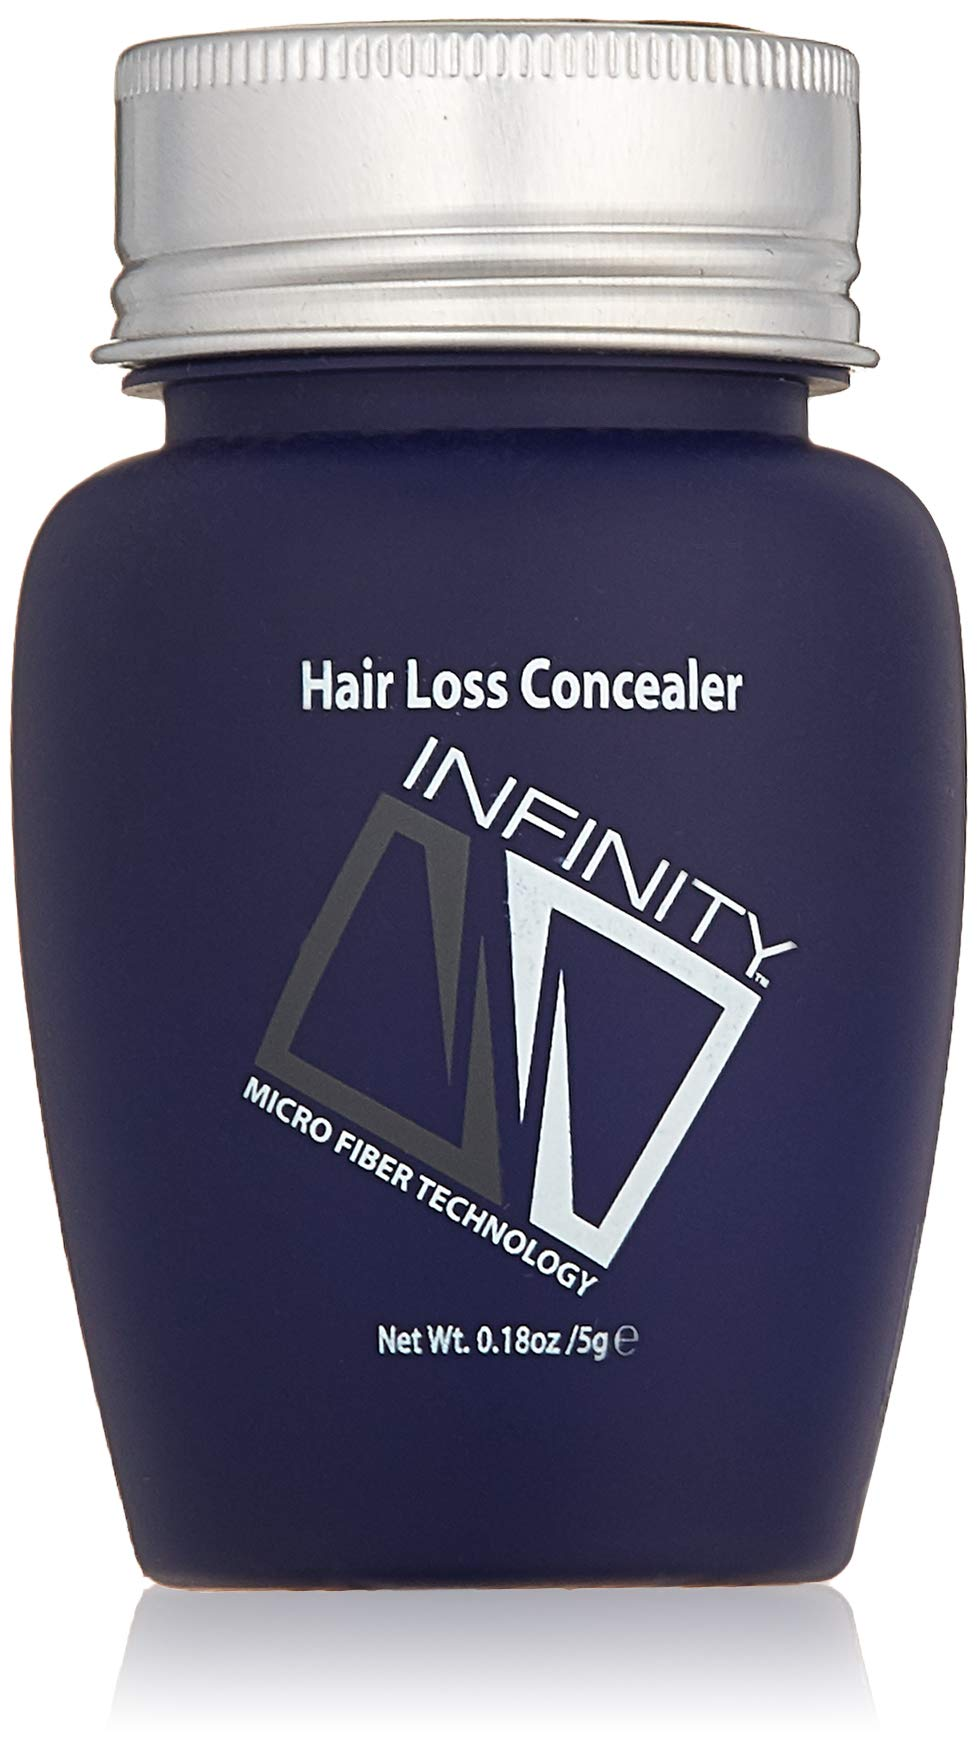 Infinity Hair Building Fibers to Conceal Thinning Hair for the Appearance of Thicker, Fuller Hair